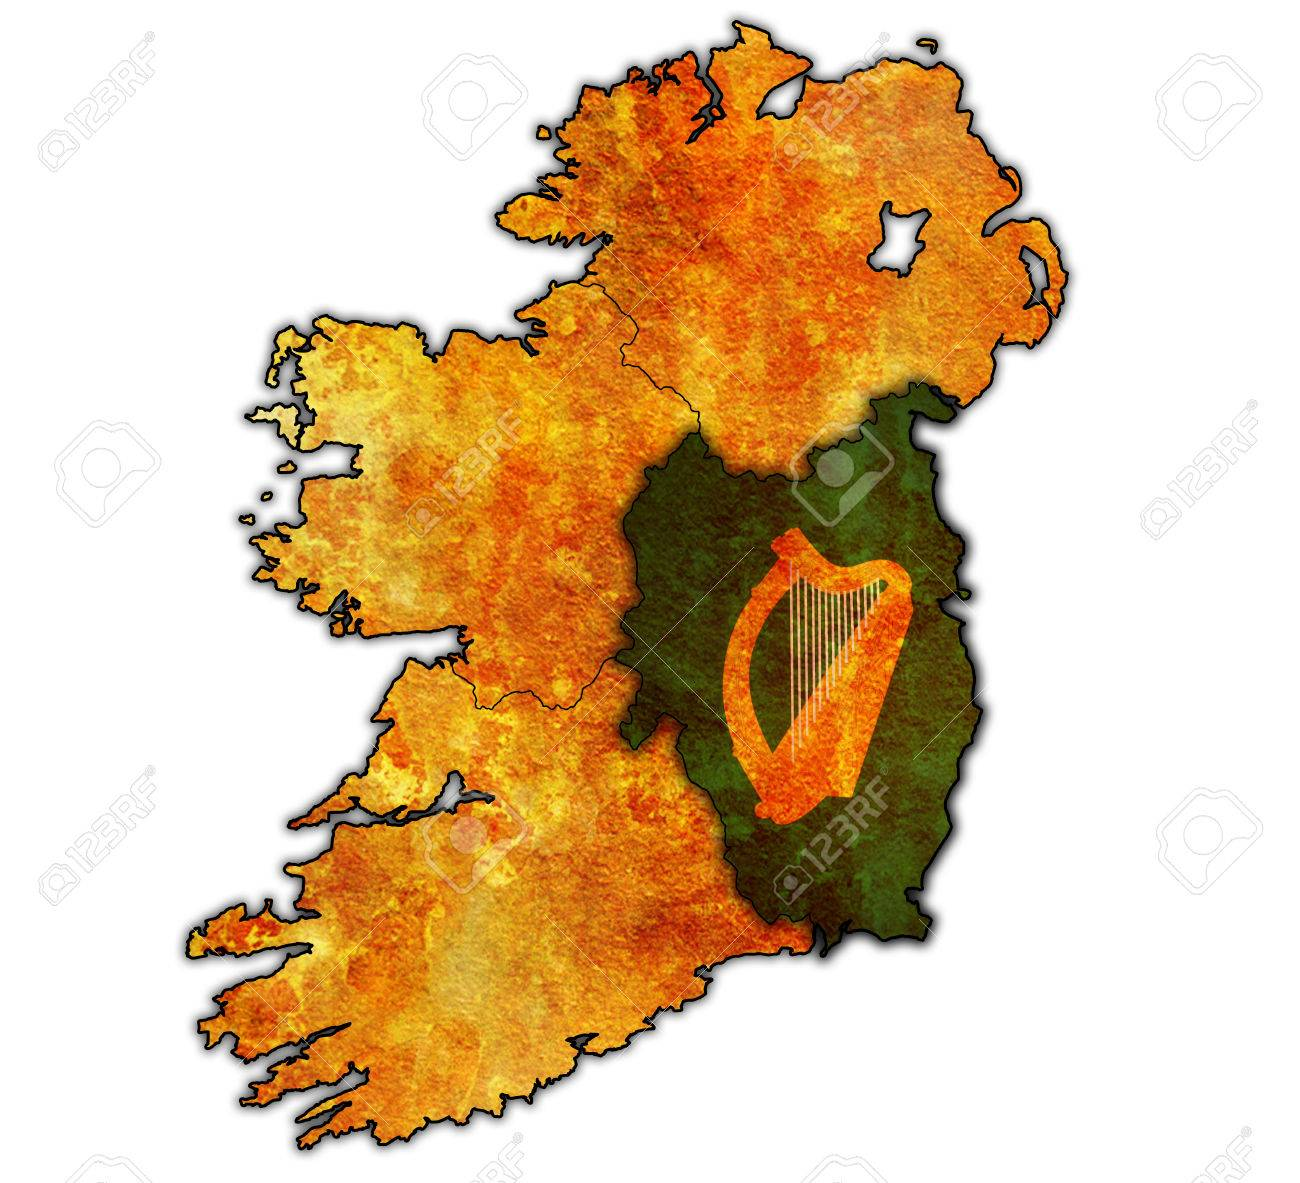 leinster with borders and flags of provinces on map of ireland